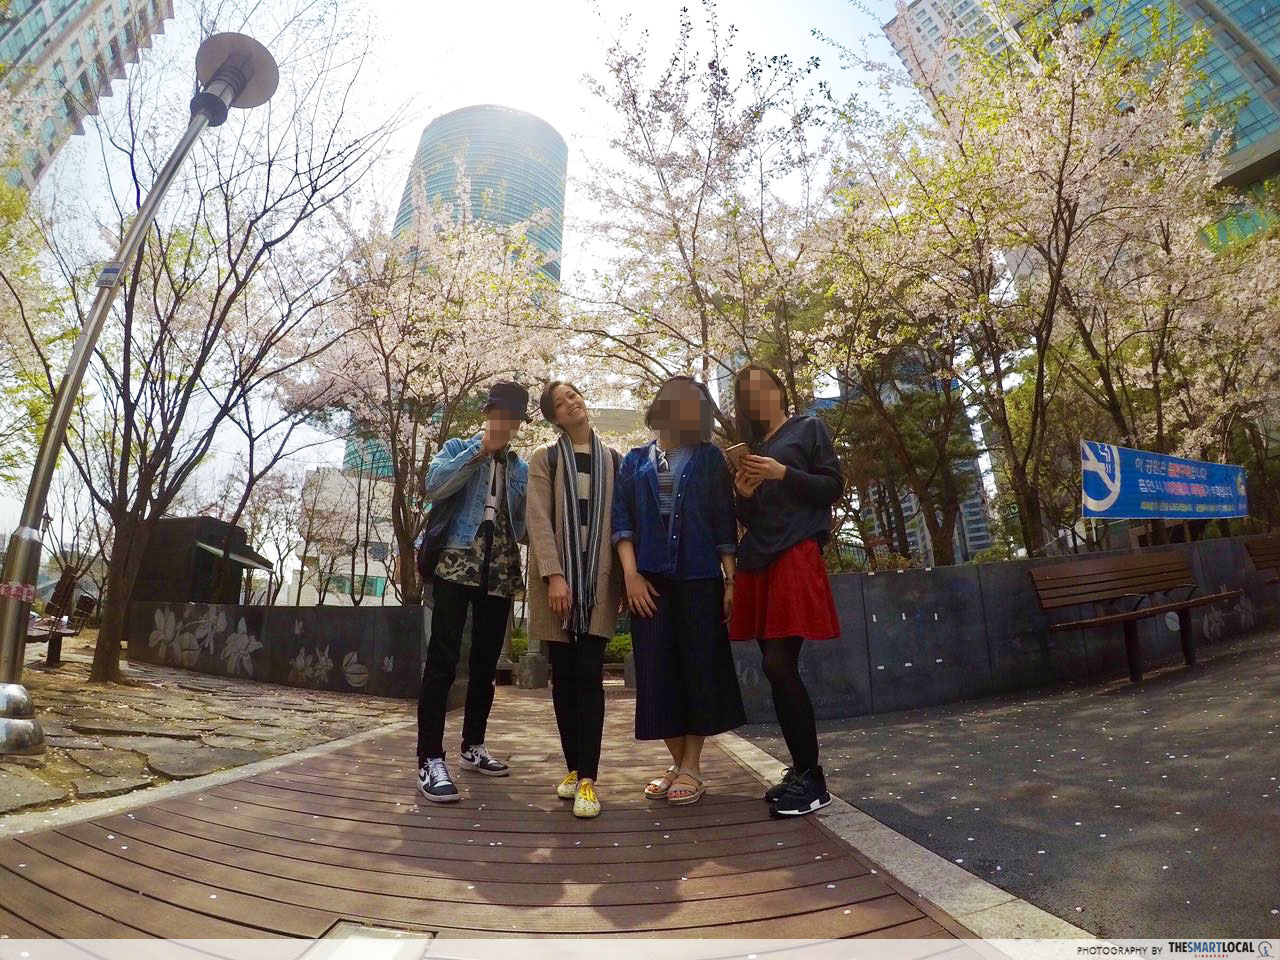 Group pic in Seoul with cherry blossoms